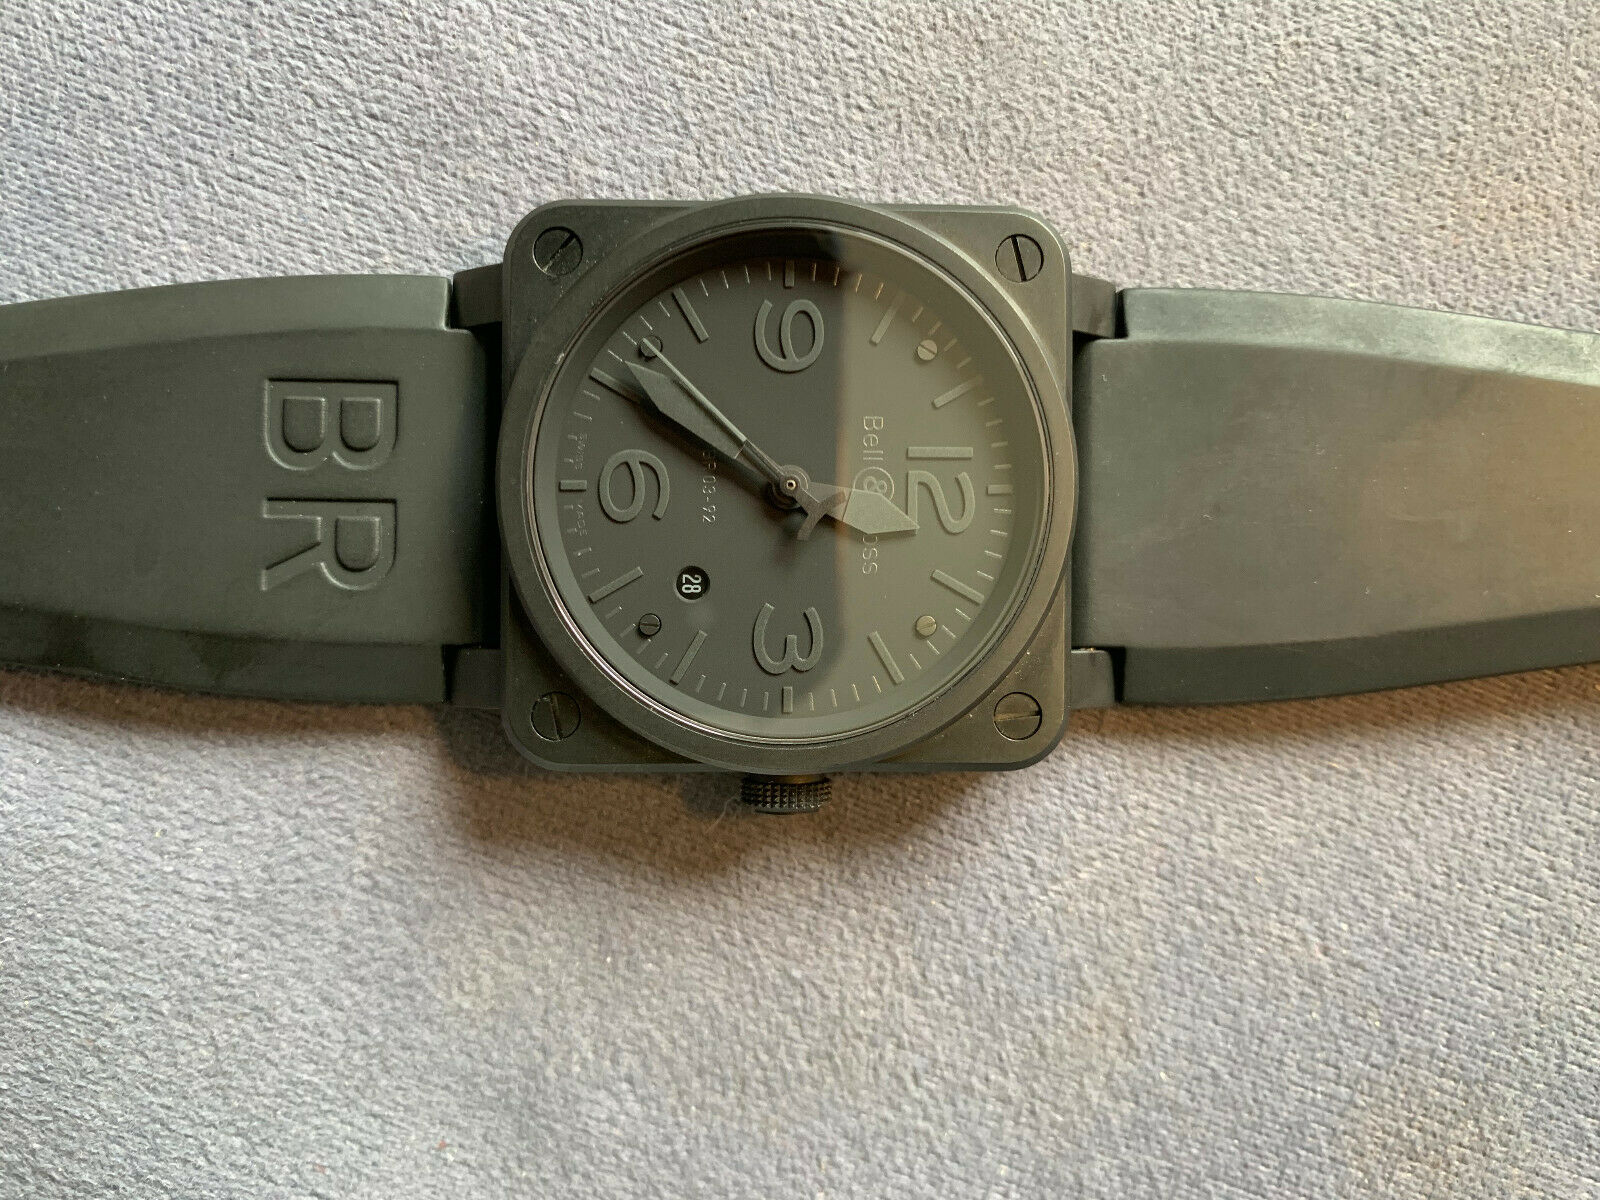 Bell & Ross BR03-92-92S-09201 Aviation Military Spec Watch - watch picture 1